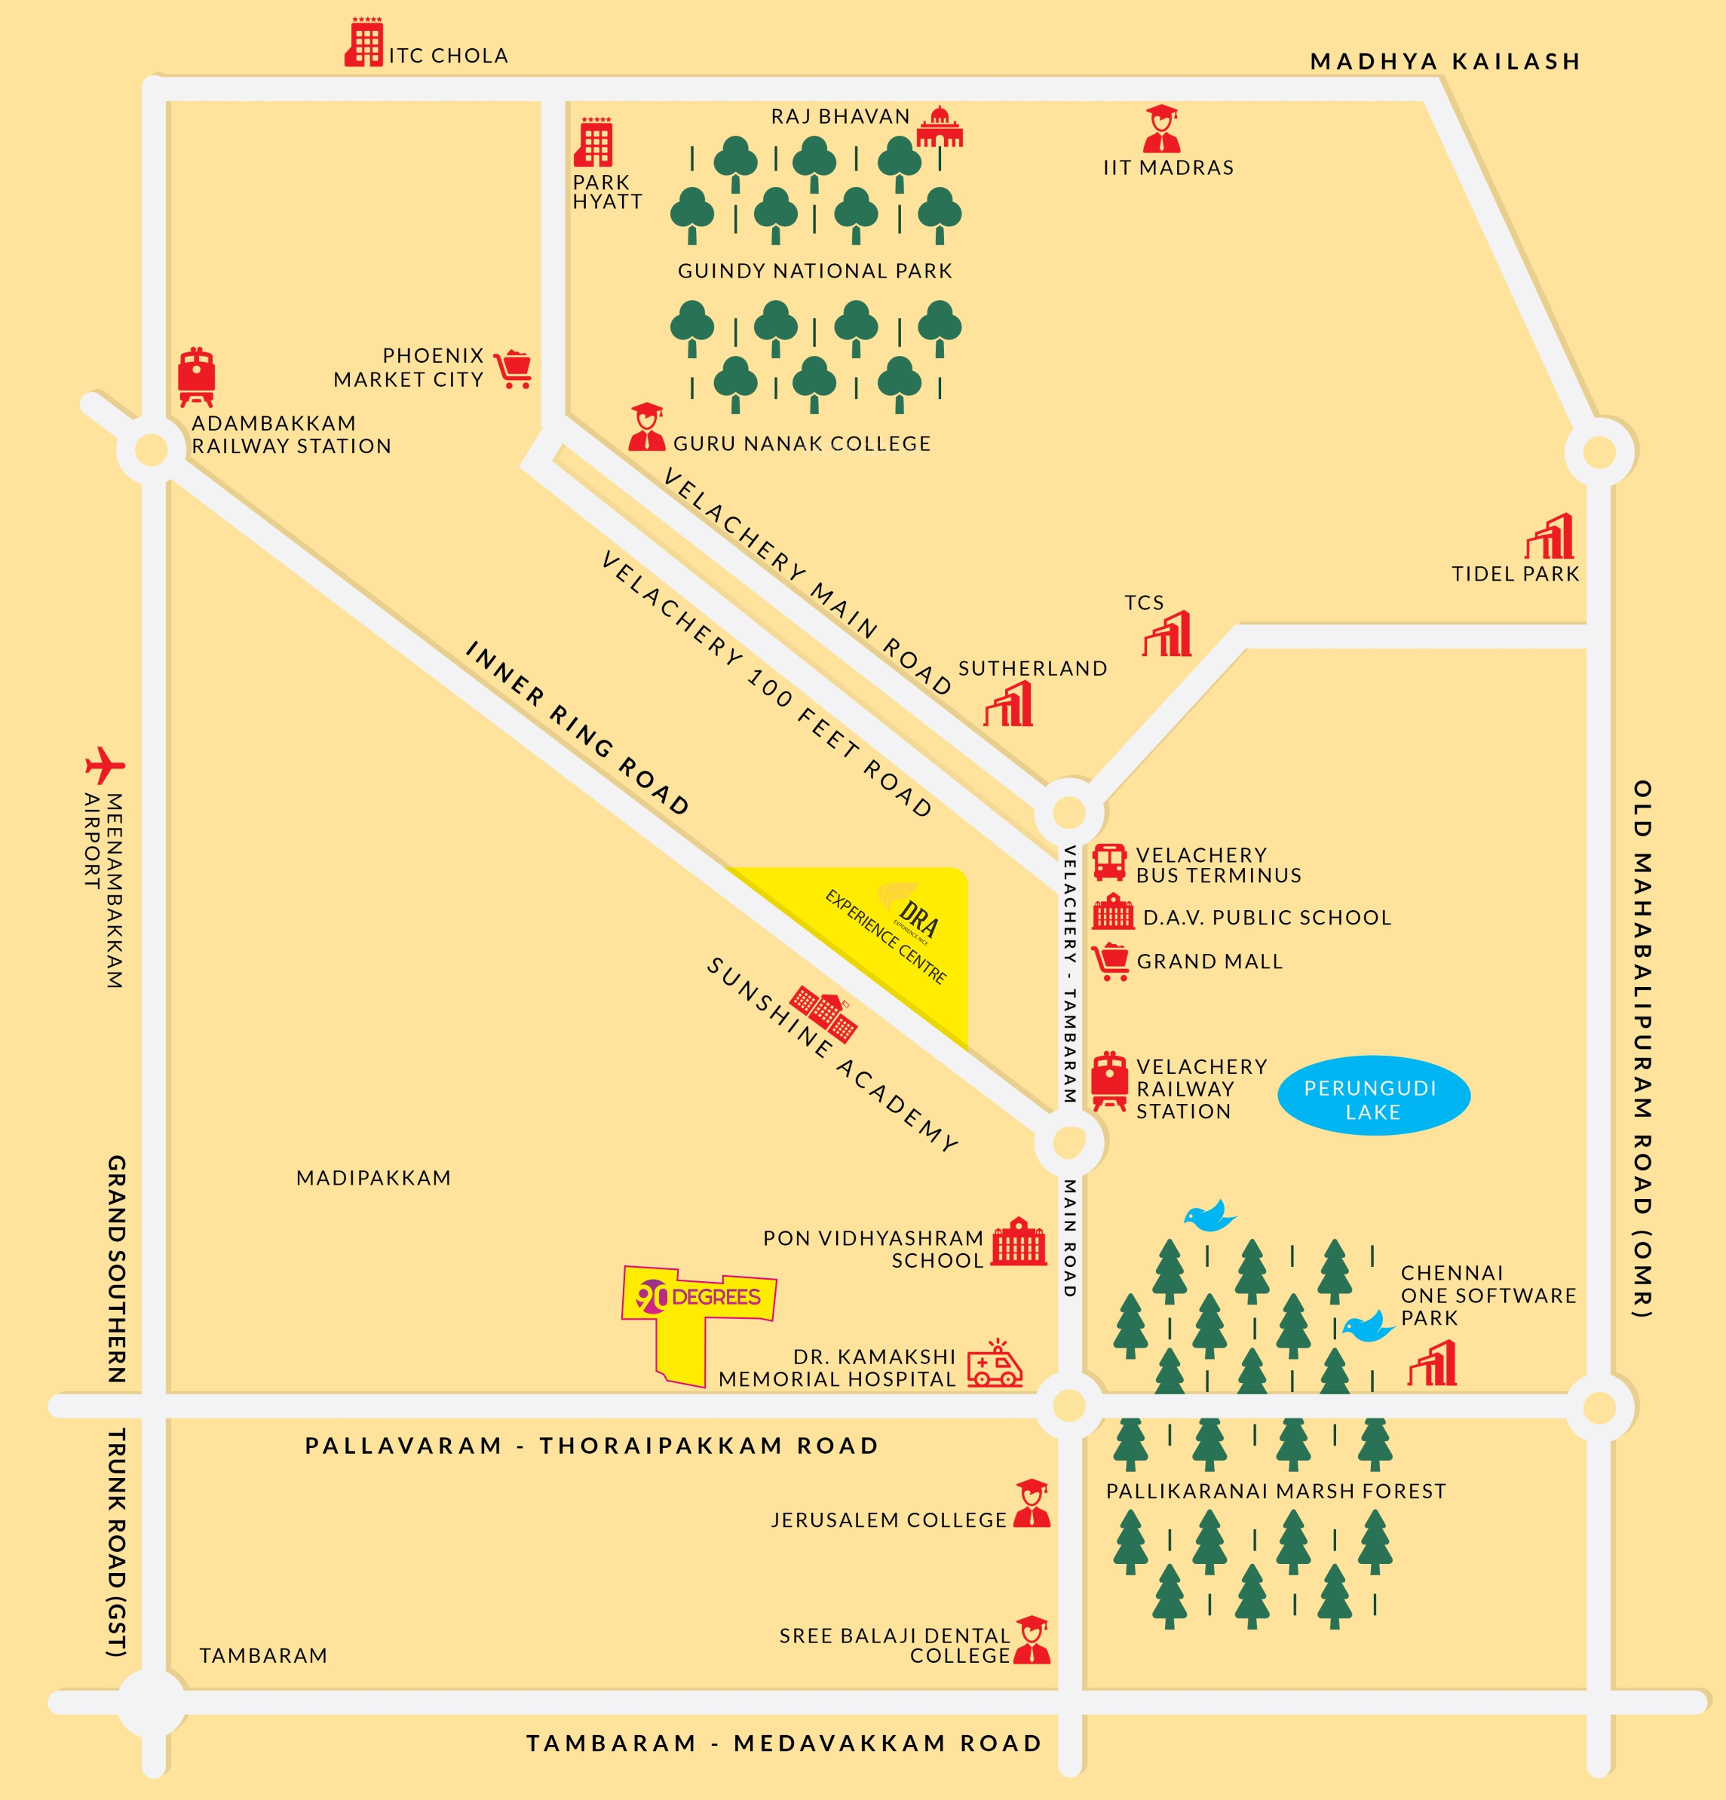 Ninety Degrees Apartments: 1282 Sq Ft 3 BHK 3T Apartment For Sale In DRA 90 Degrees Madipakkam Chennai